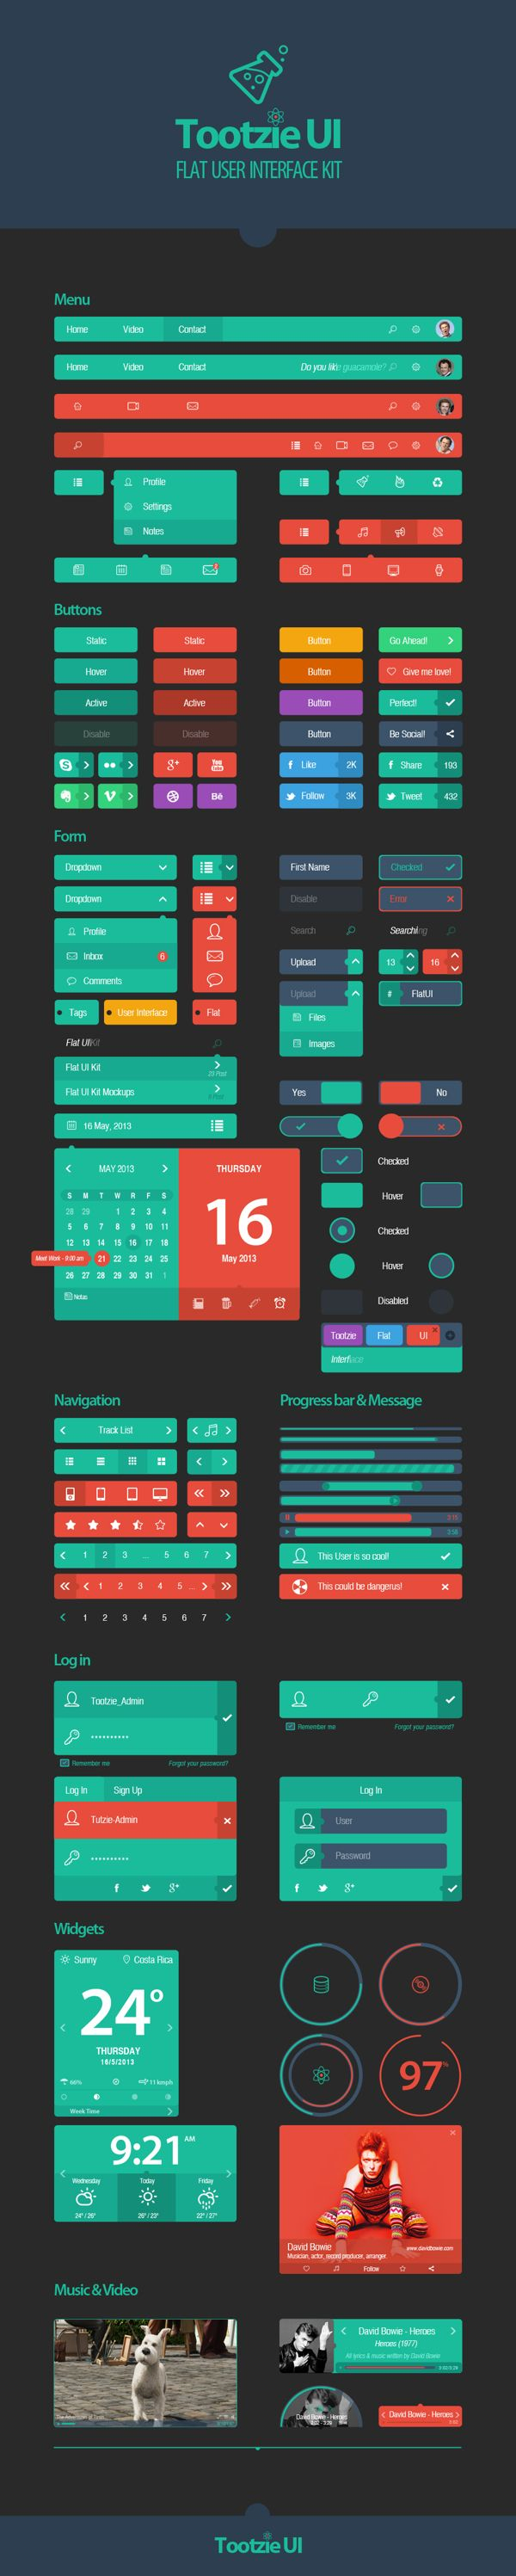 Tootzie UI Kit by Josué Solano, via Behance *** #guikit #gui #behance